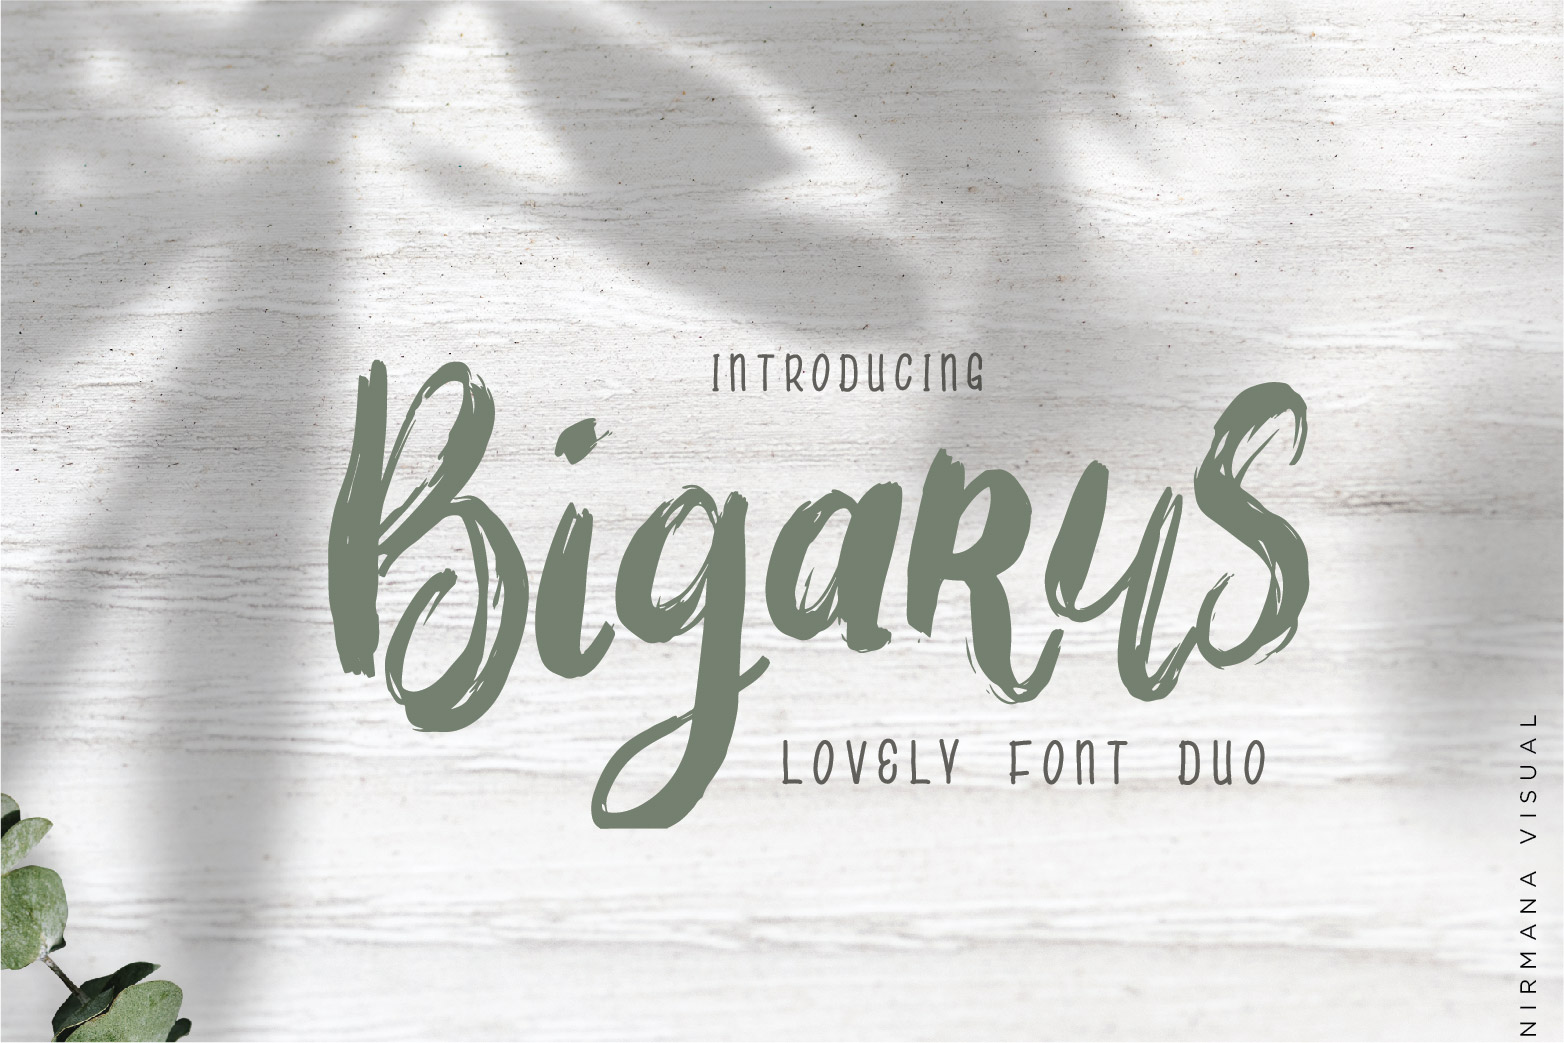 Bigarus - Font Duo example image 1